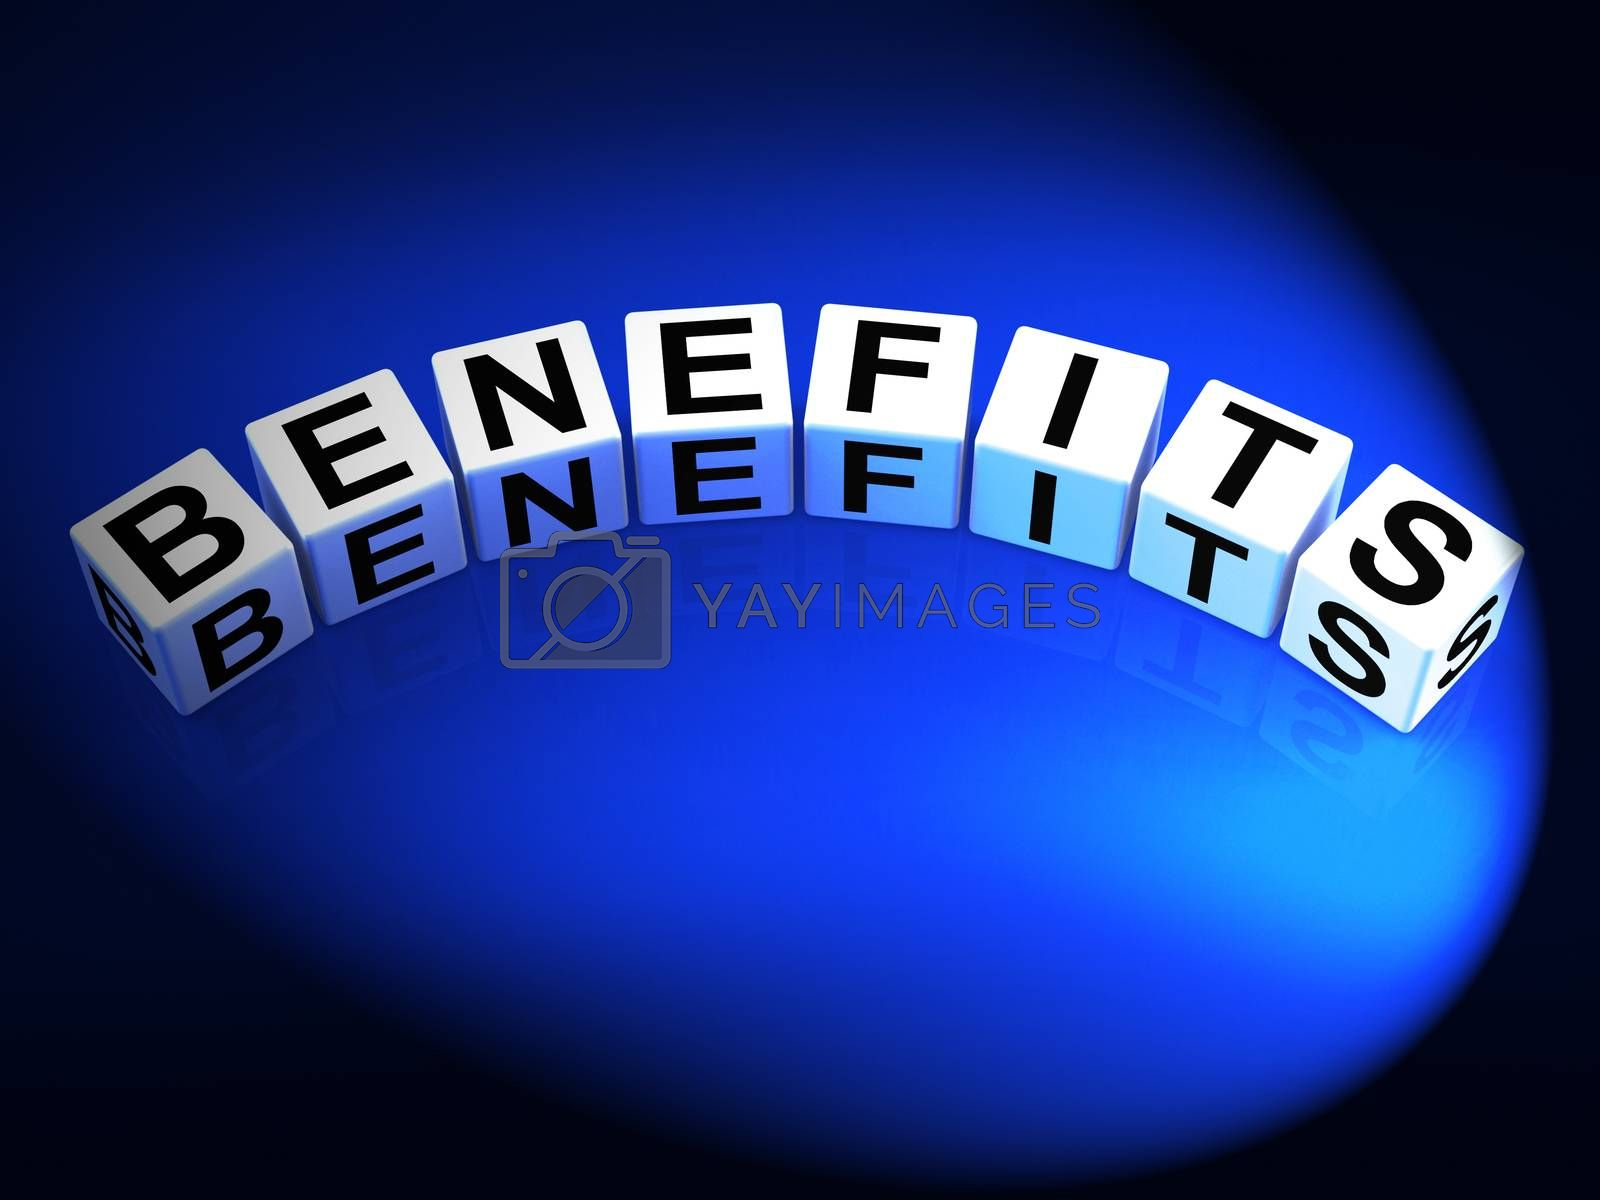 Benefits Dice Mean Perks Awards and Merits by stuartmiles